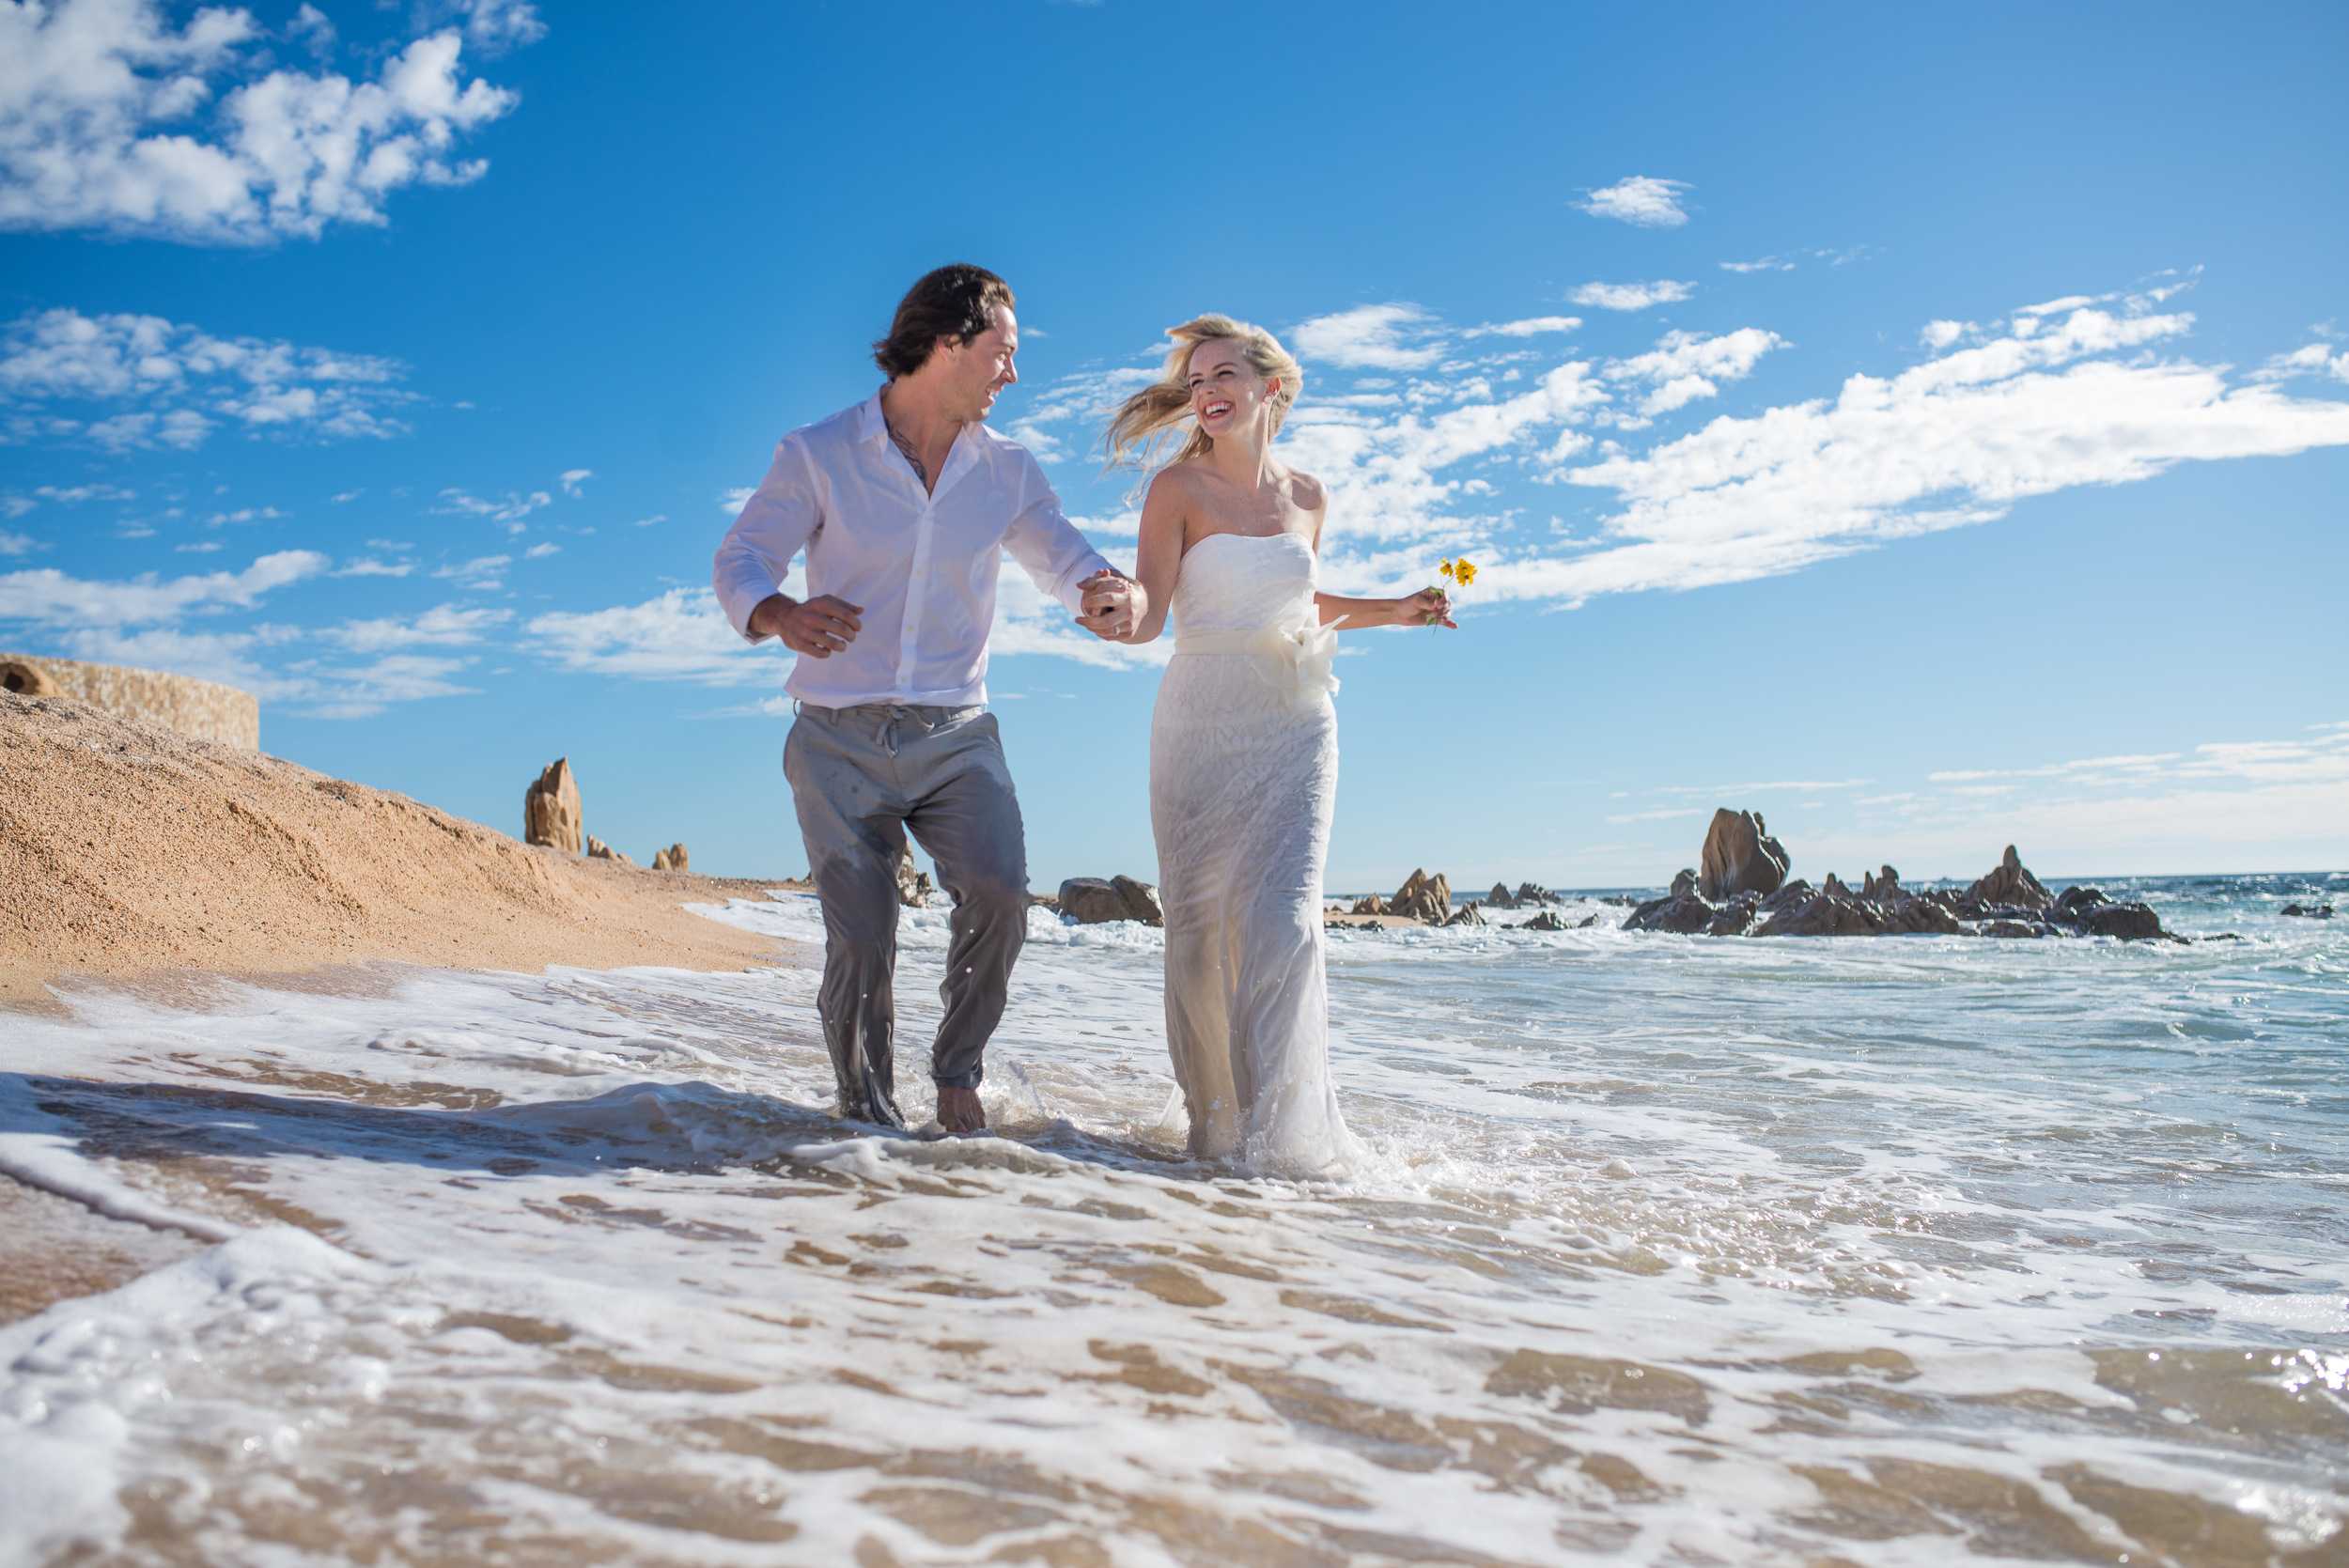 Bride and groom running and having fun on the sunny beaches of Cabo San Lucas